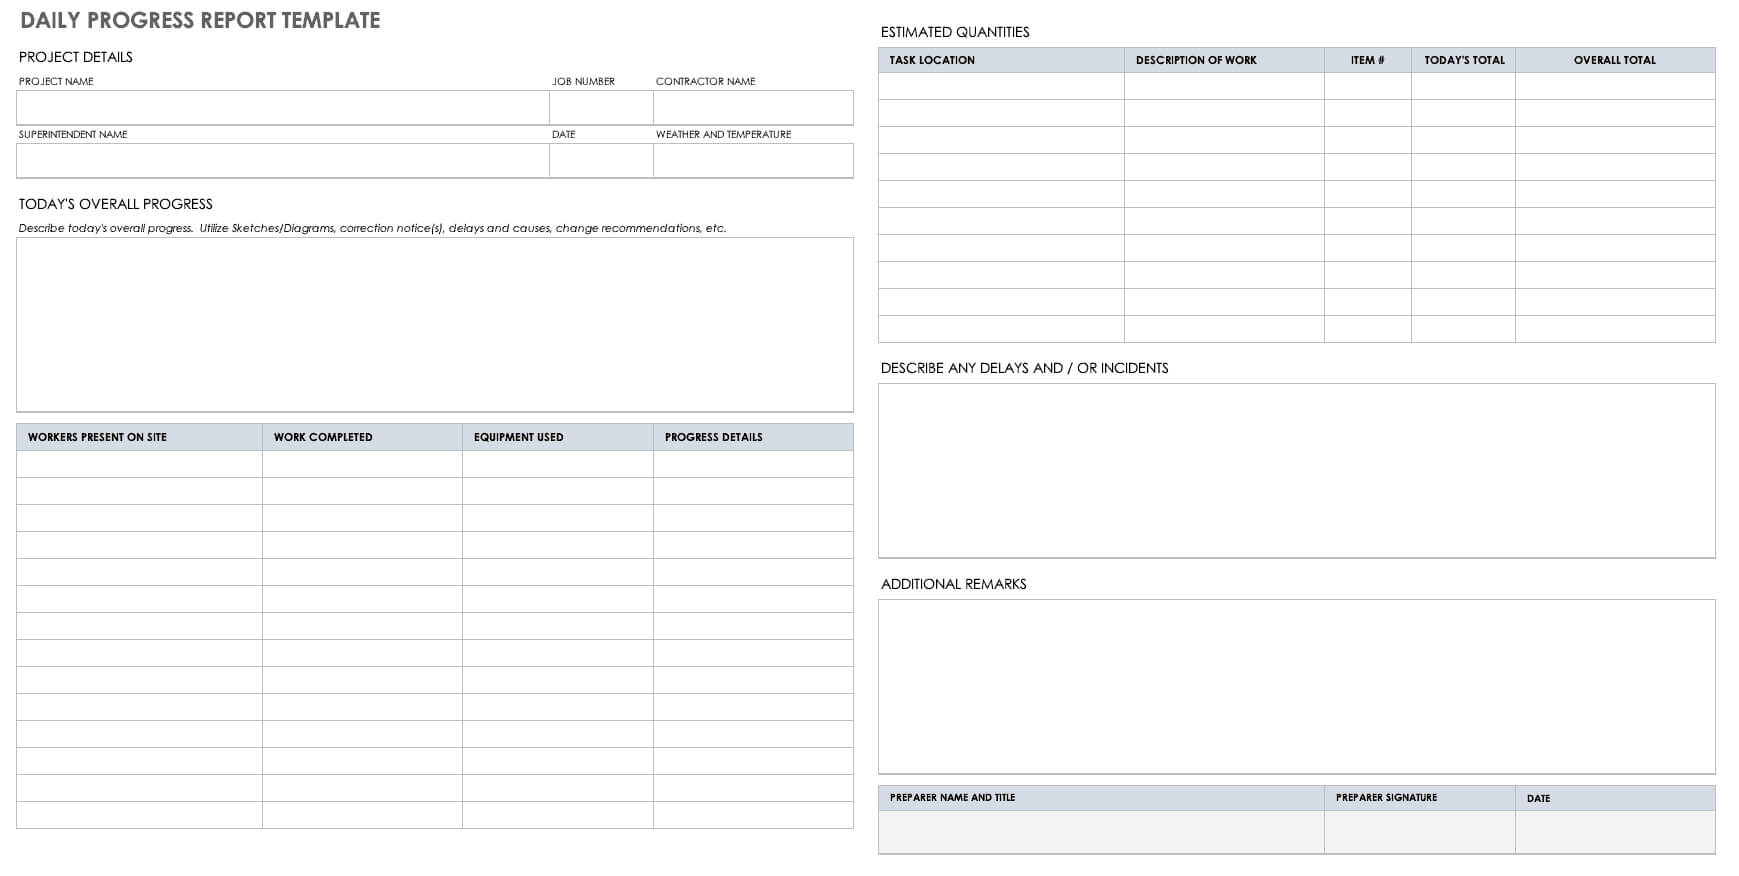 Free Project Report Templates | Smartsheet With Daily Project Status Report Template